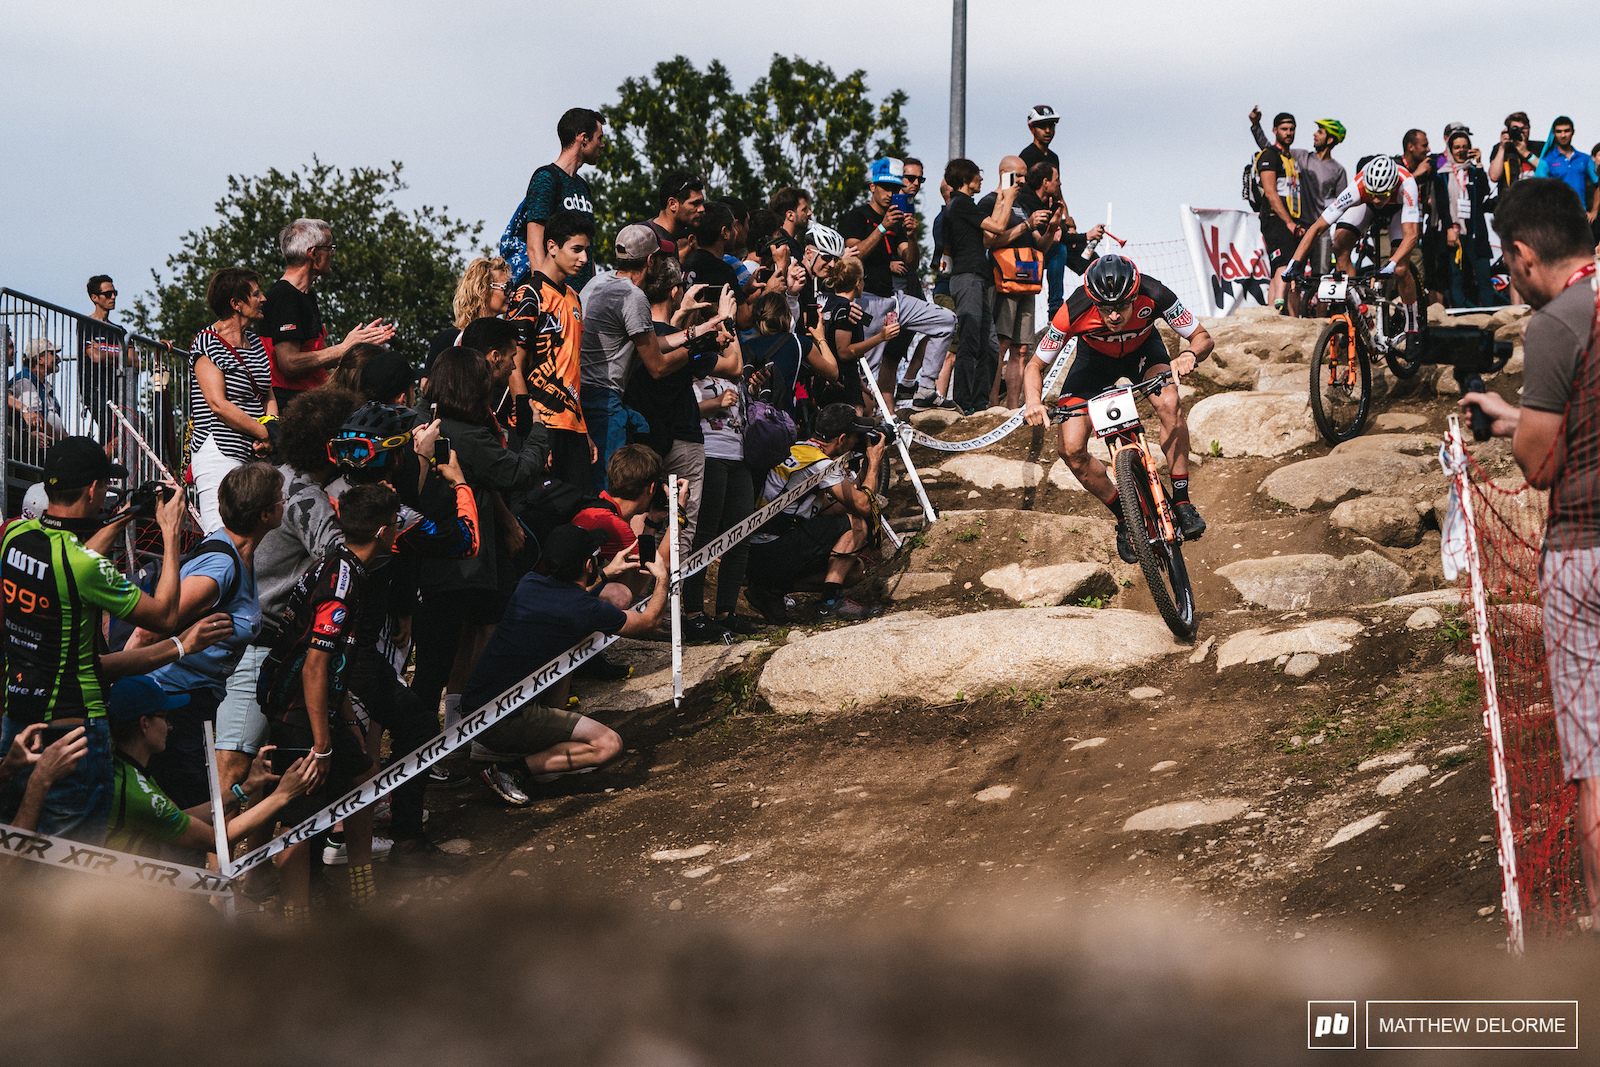 As the season progressed so did the courses. Venues took advantage of the technical terrain at their disposal and implemented it when possible.